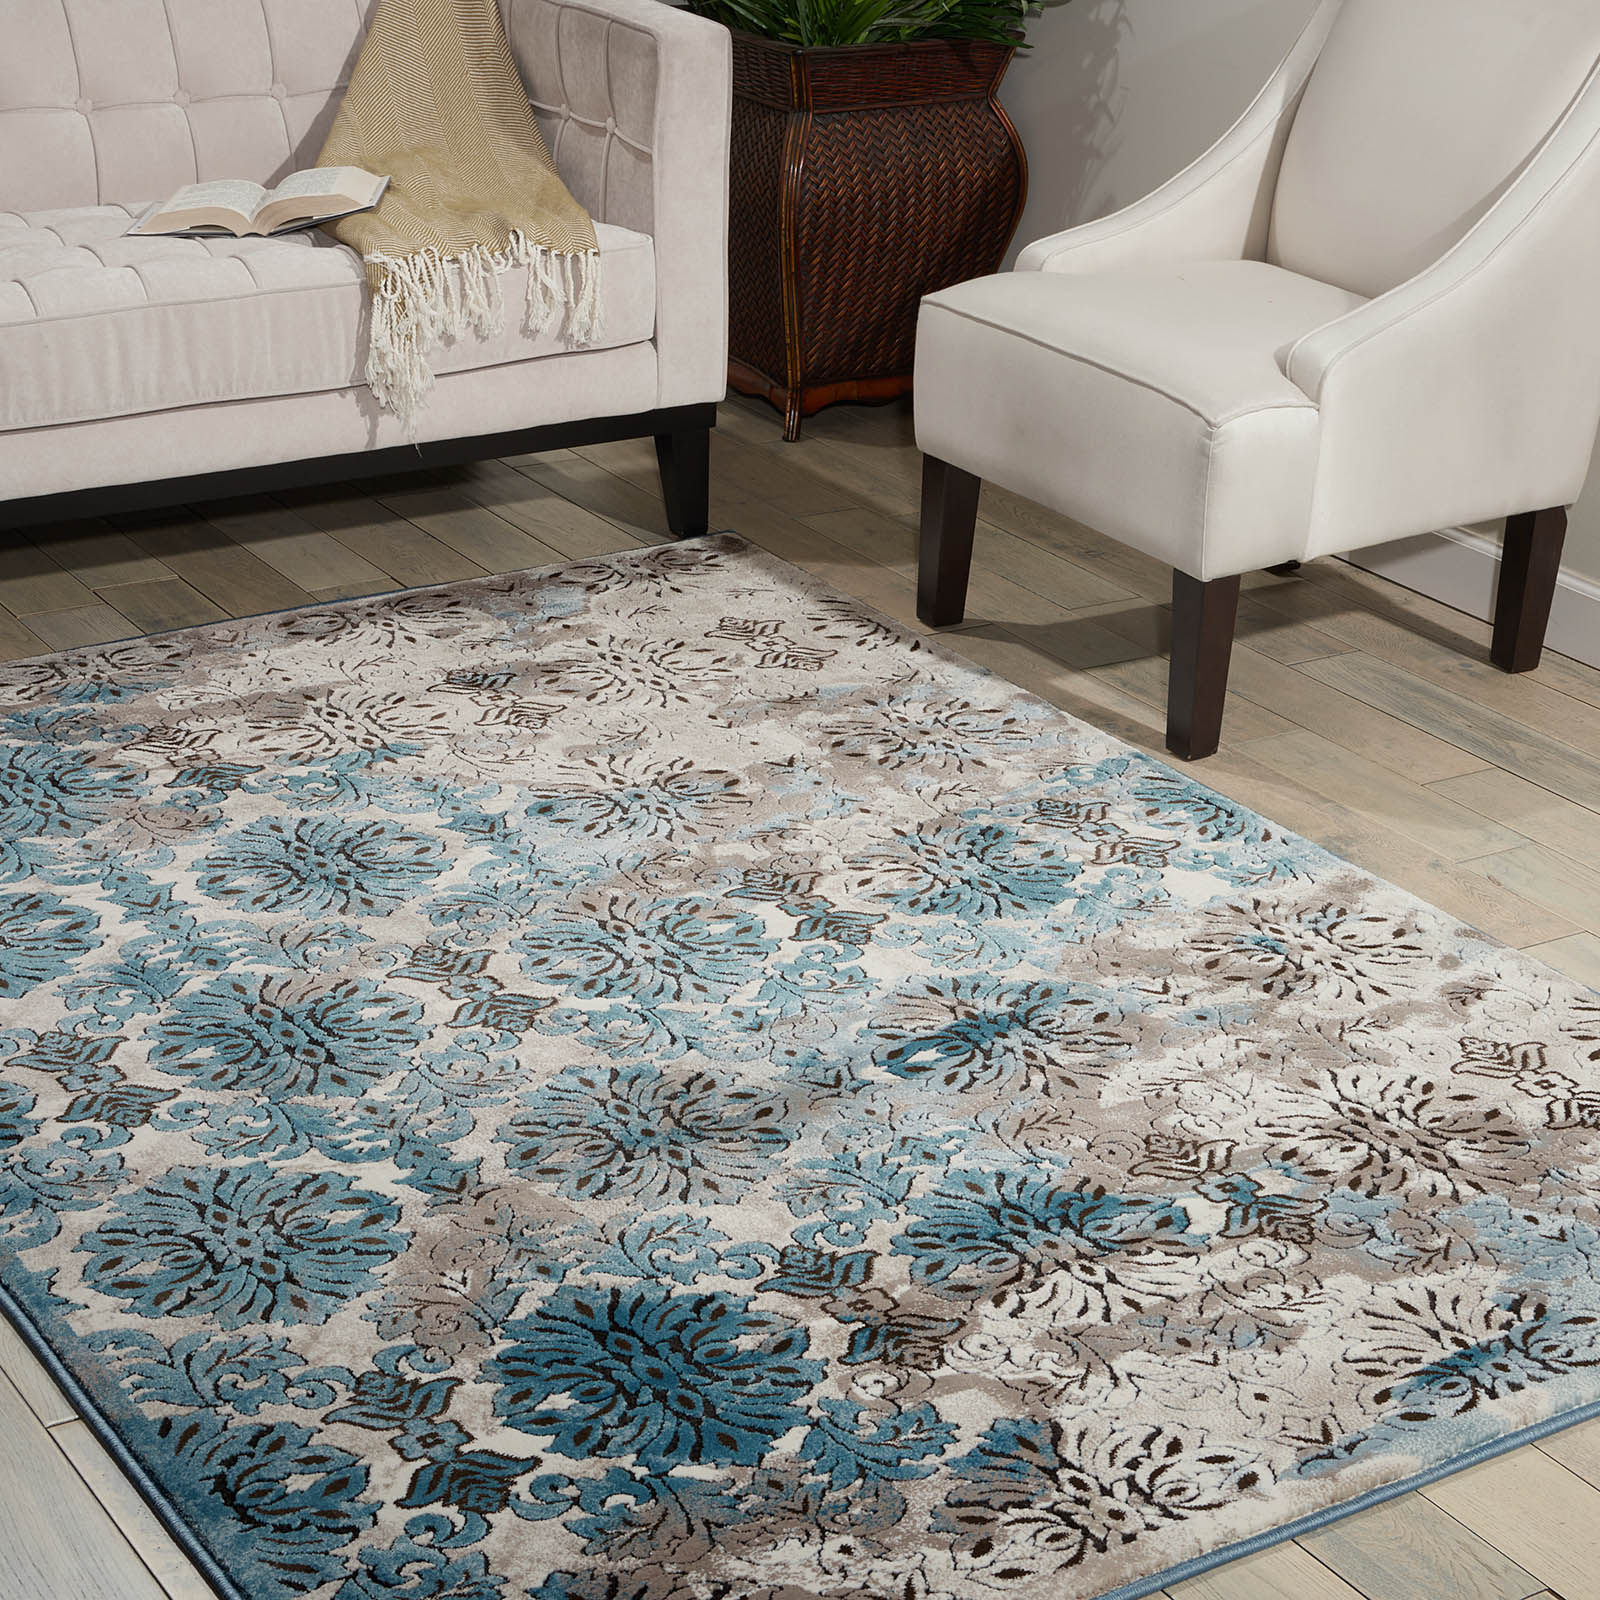 Karma Rugs KRM05 in Ivory and Blue